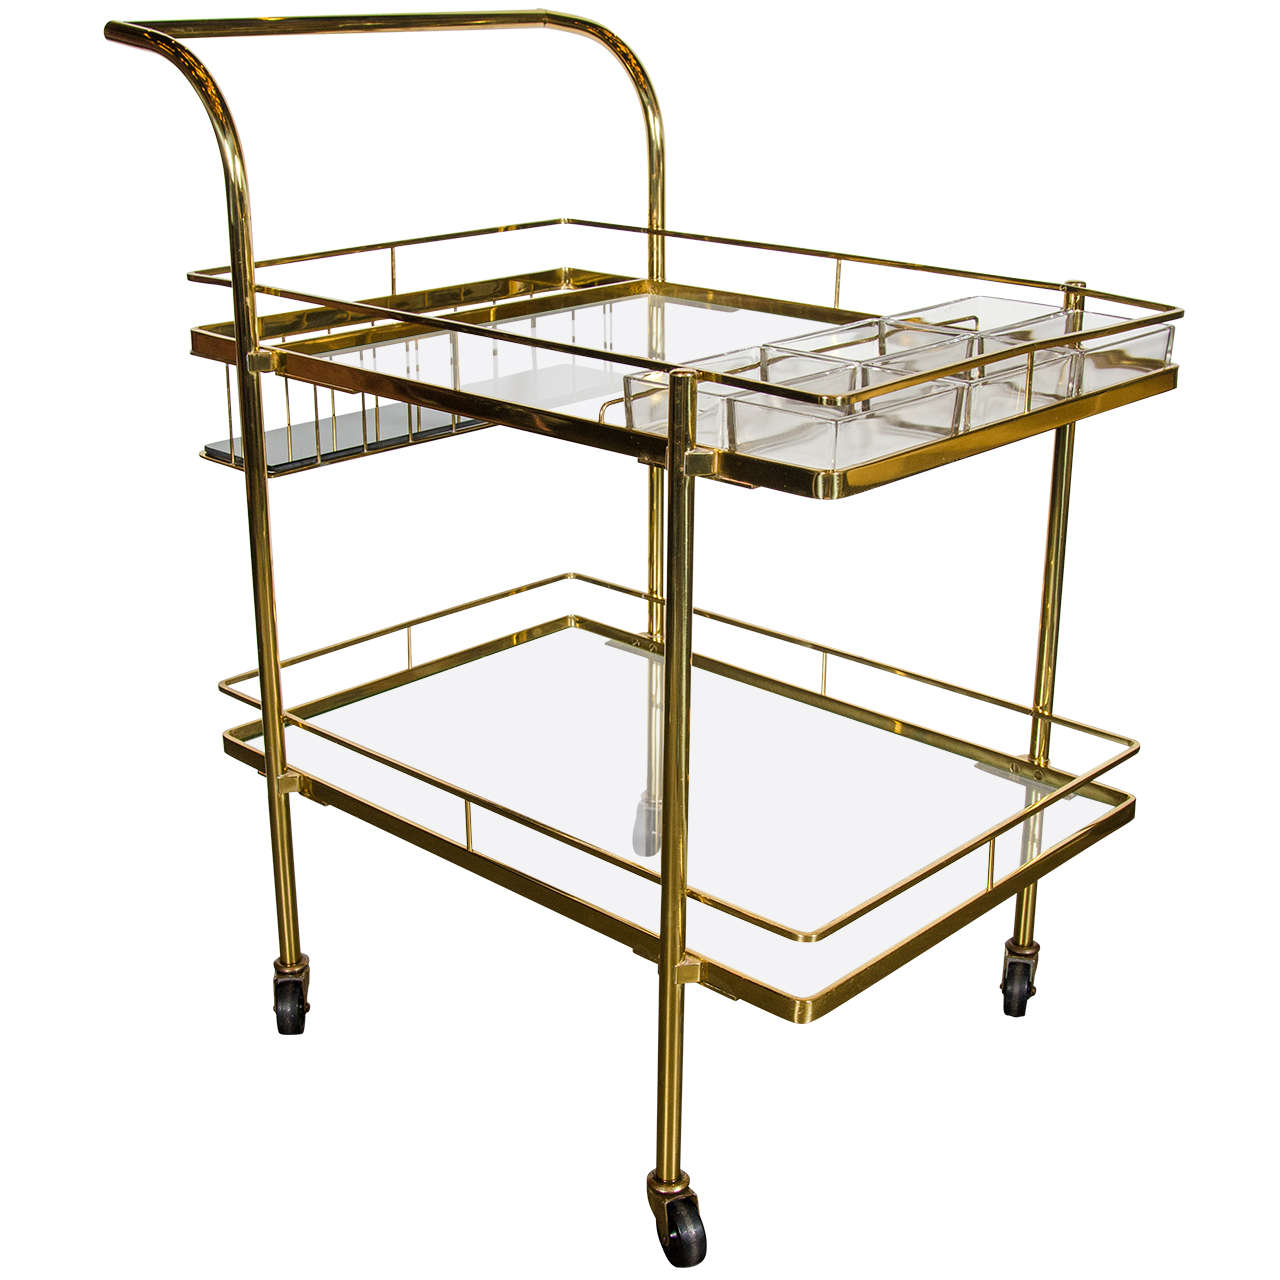 Sophisticated Mid Century Modern Bar Cart In Brass With